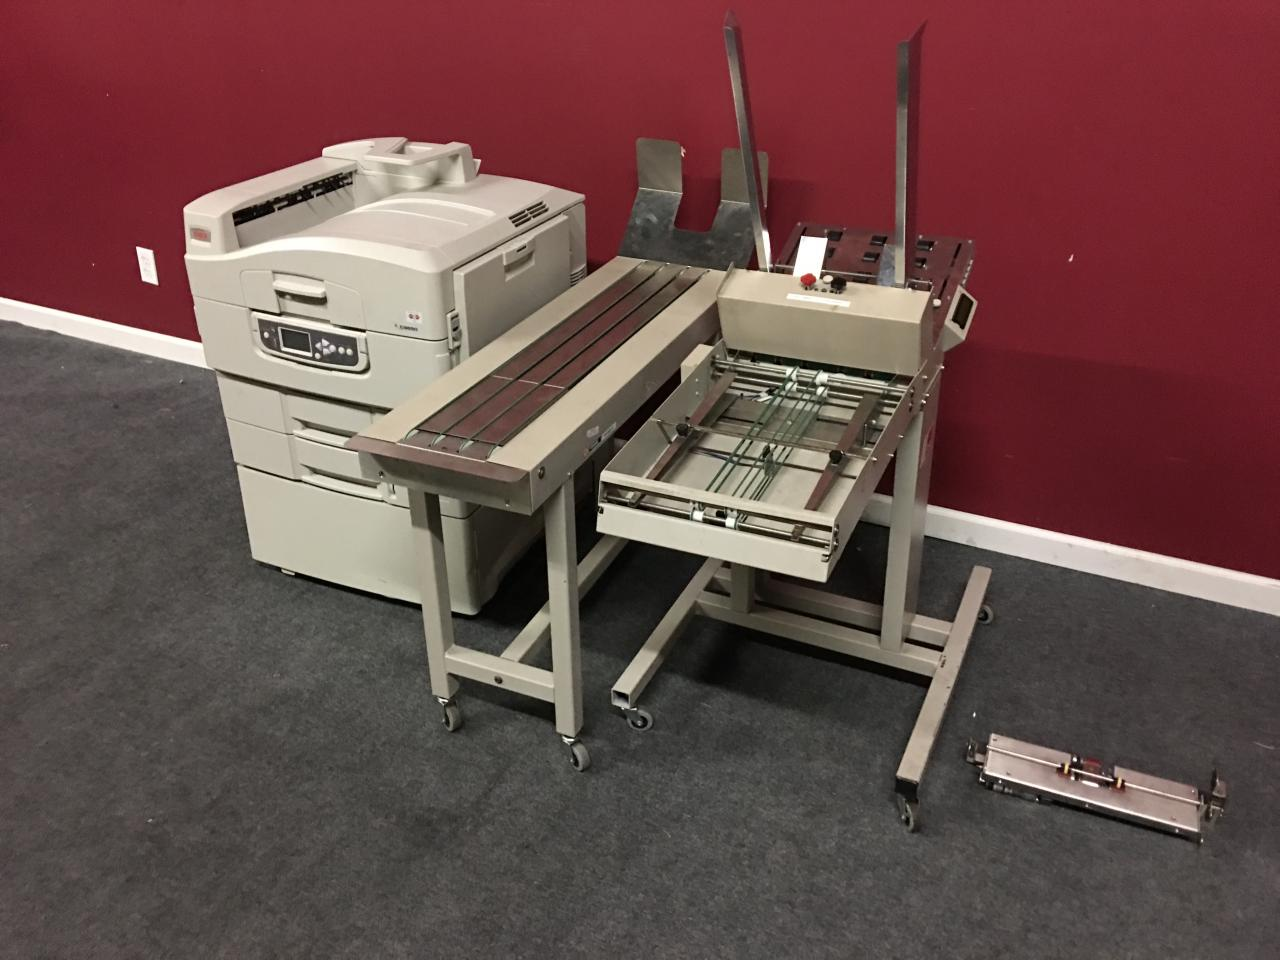 bowes formax inserting equipment from mn in moorhead pitney feeder envelope and